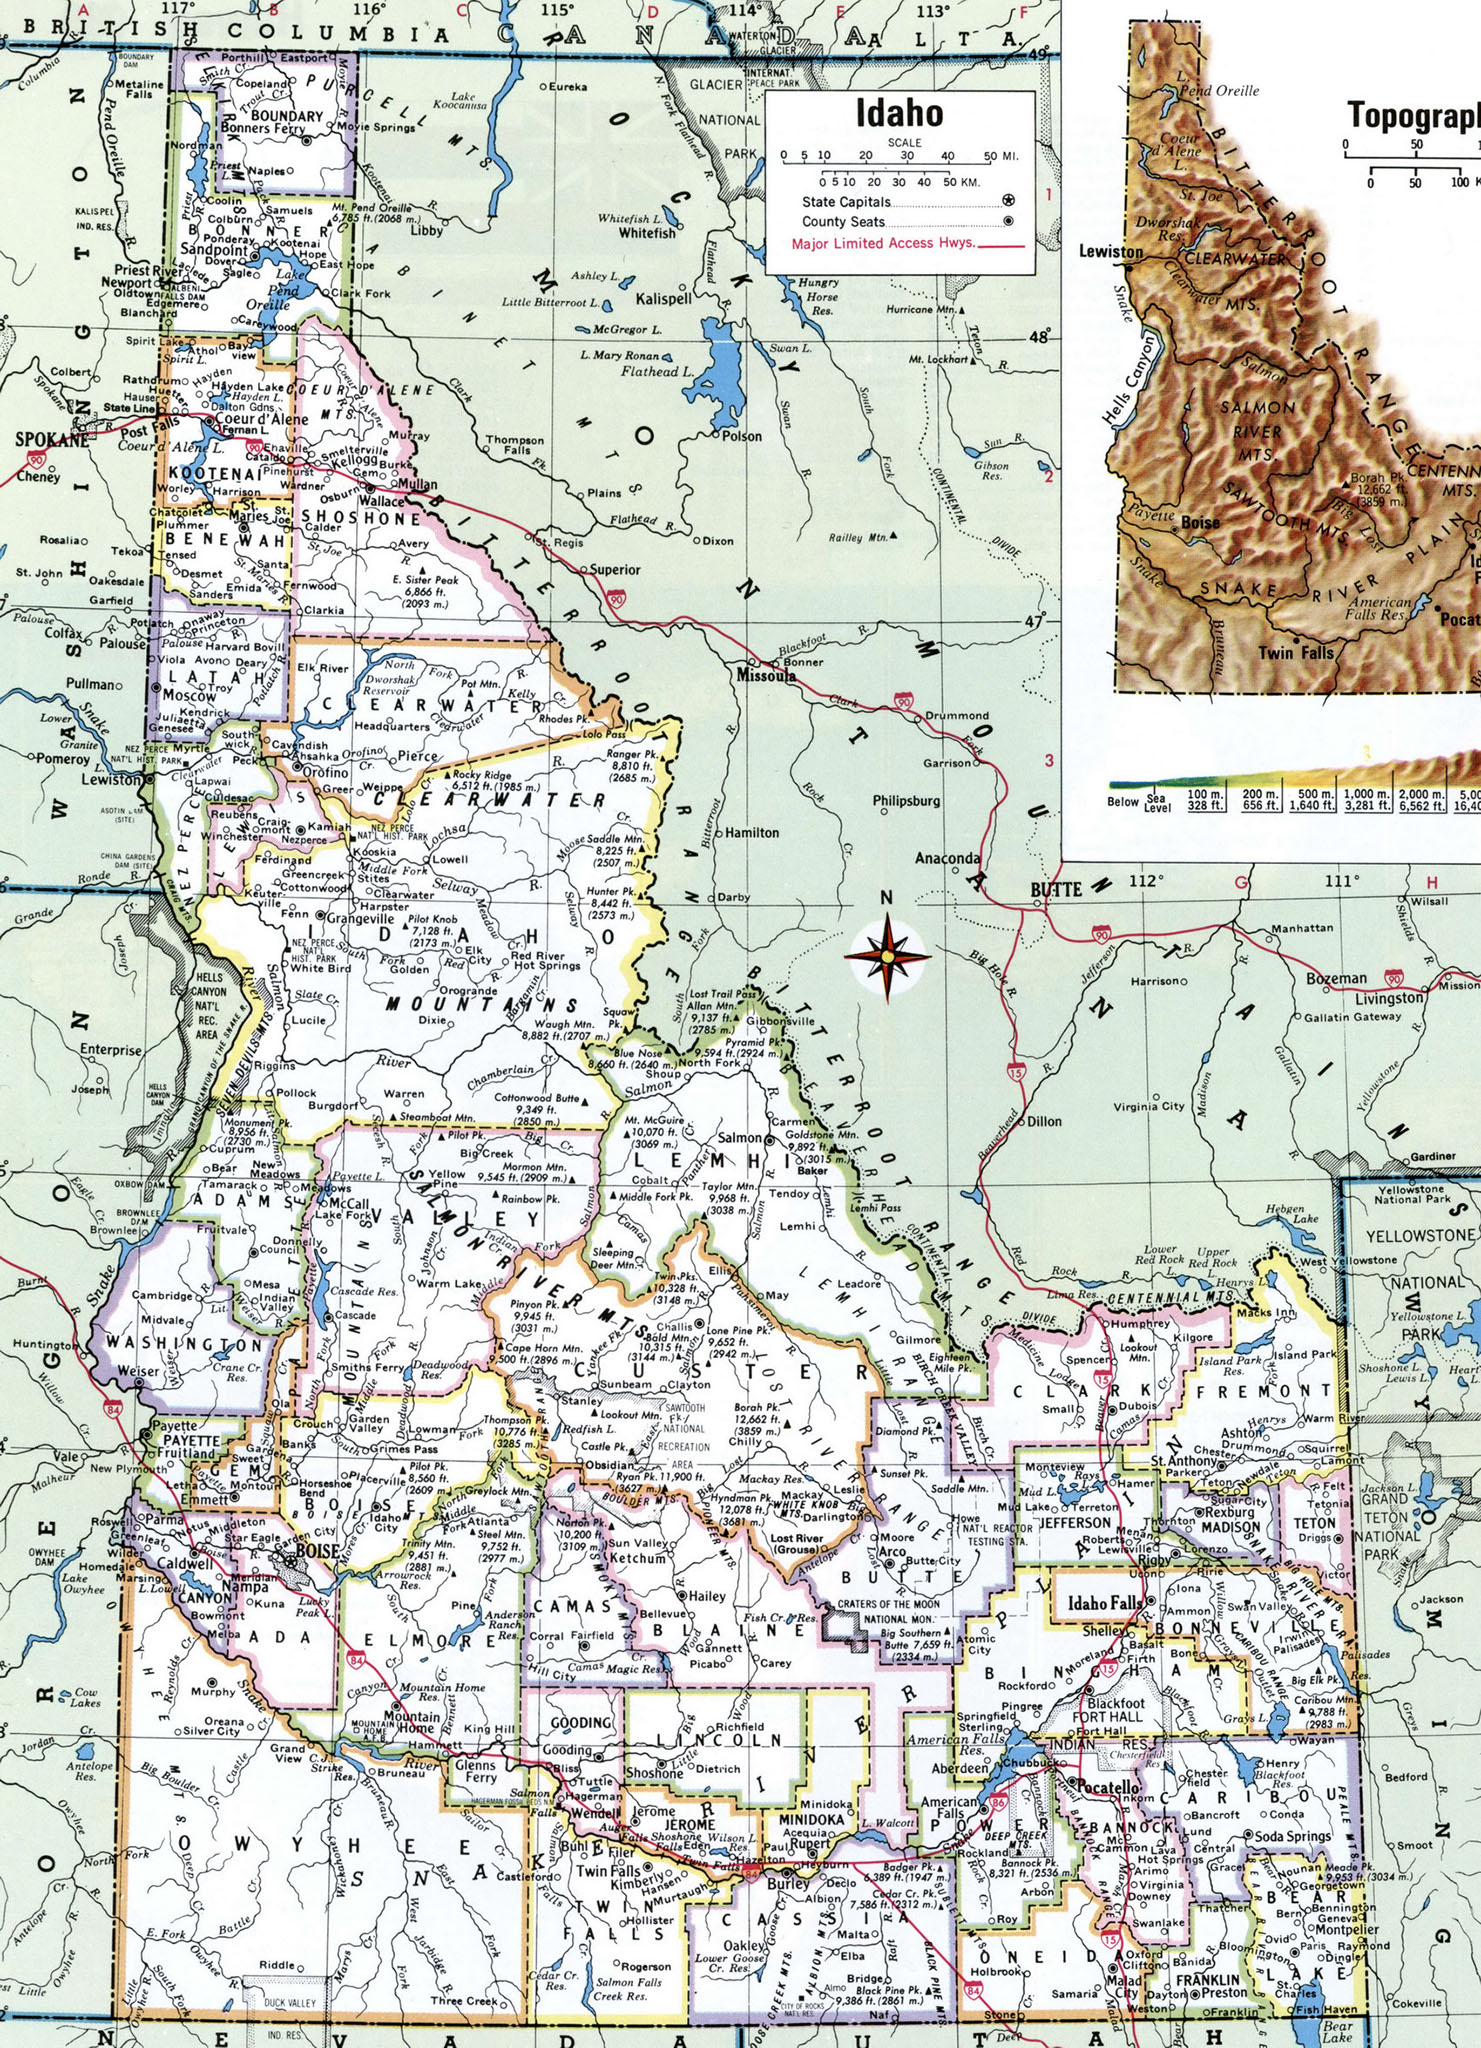 Idaho County - State of idaho map